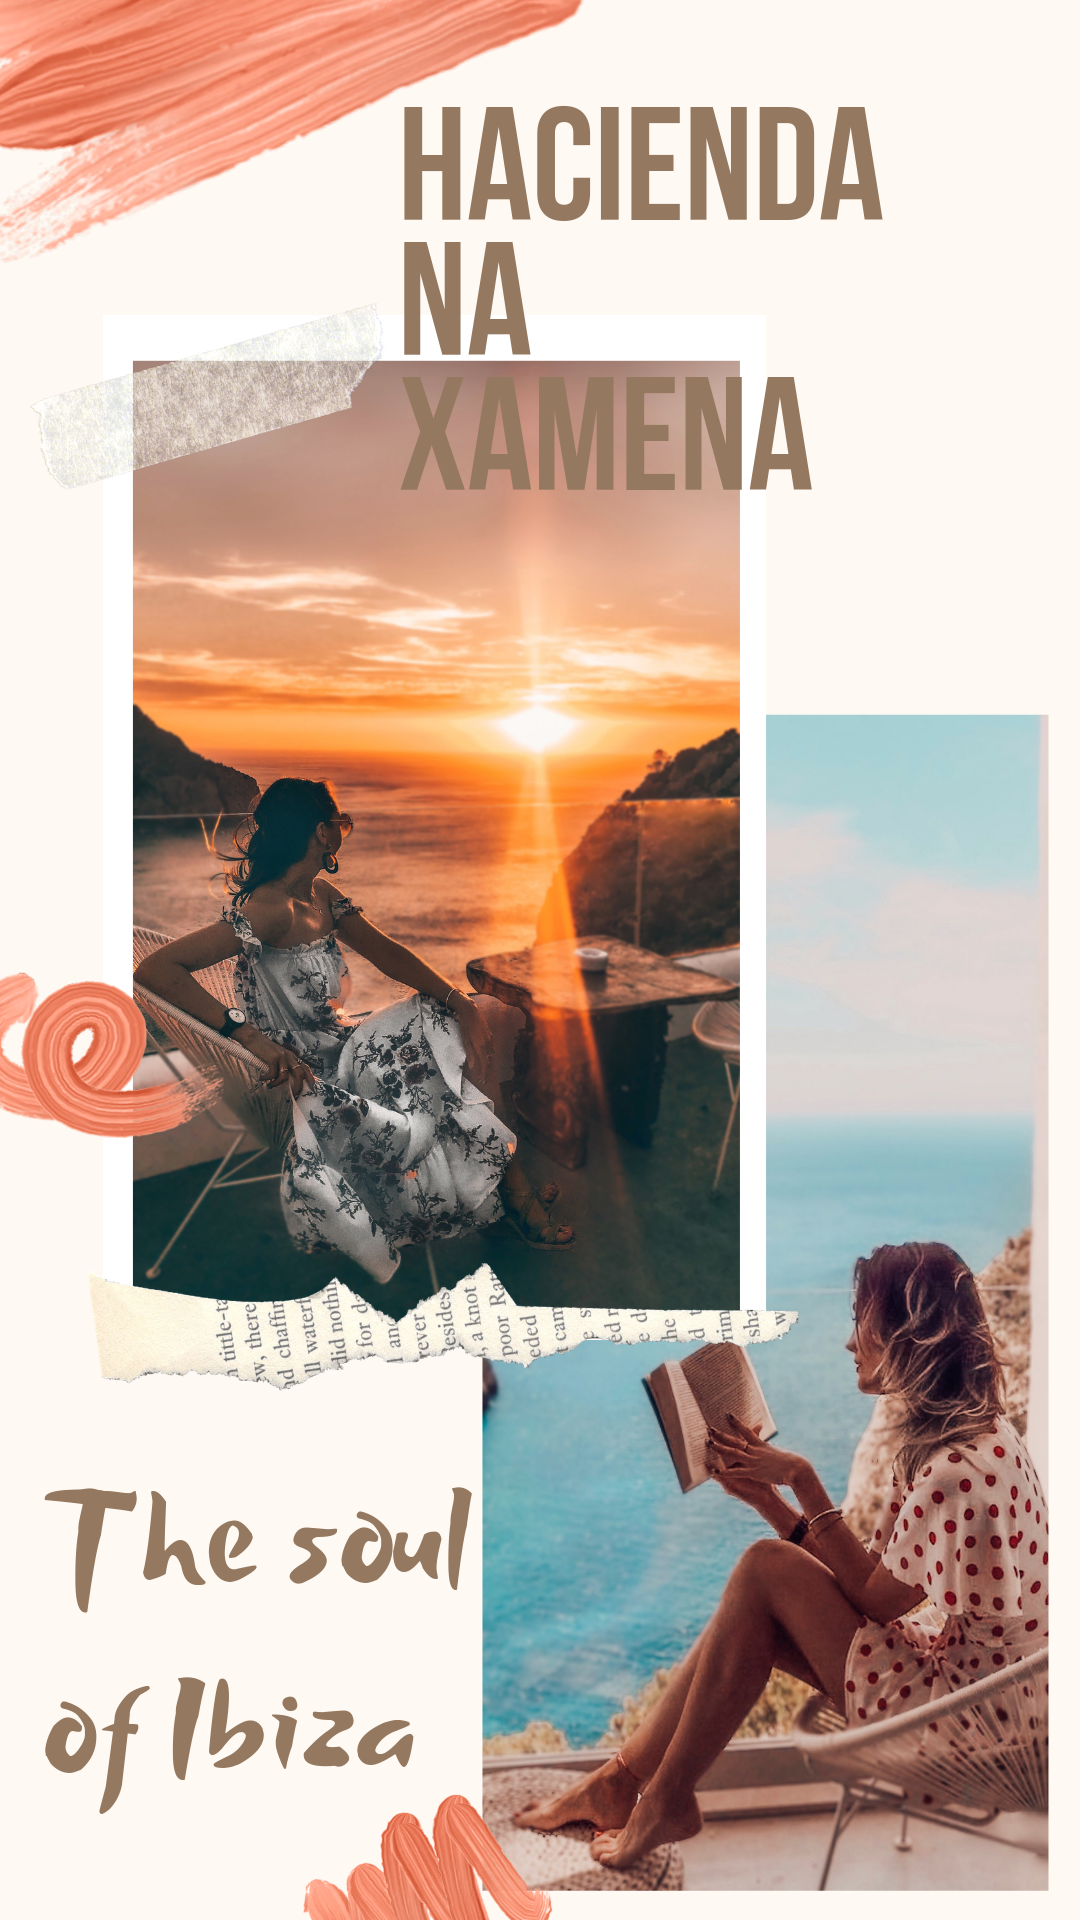 Title Image for Hacienda Na Xamena - The Soul of Ibiza